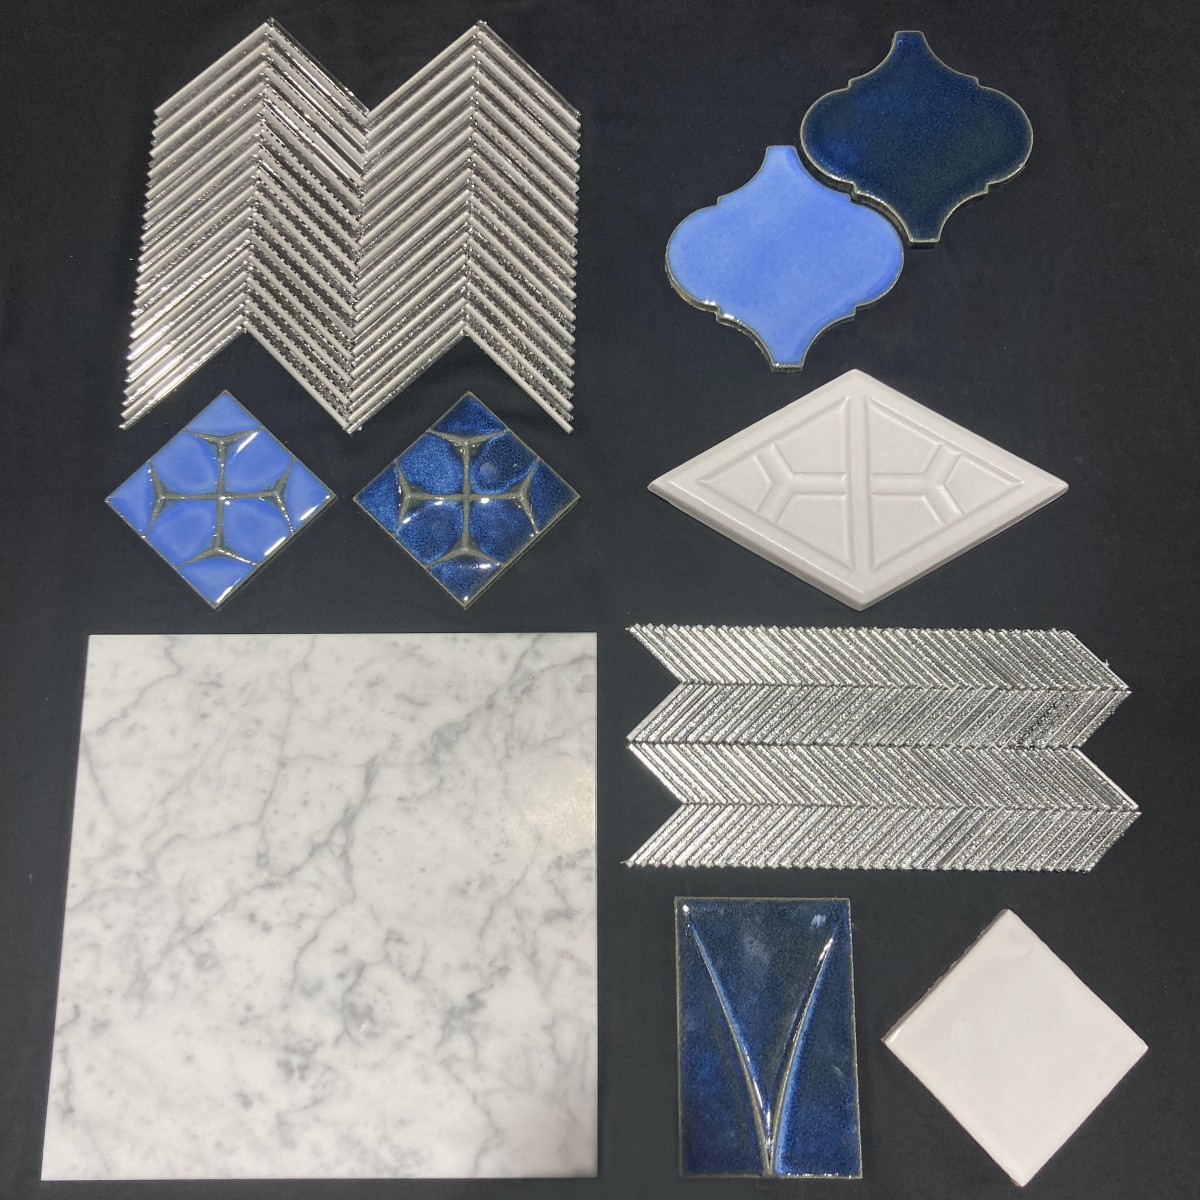 Elevated elegance, design inspiration for tile walls and floors made by Granite Division from Tyler Texas